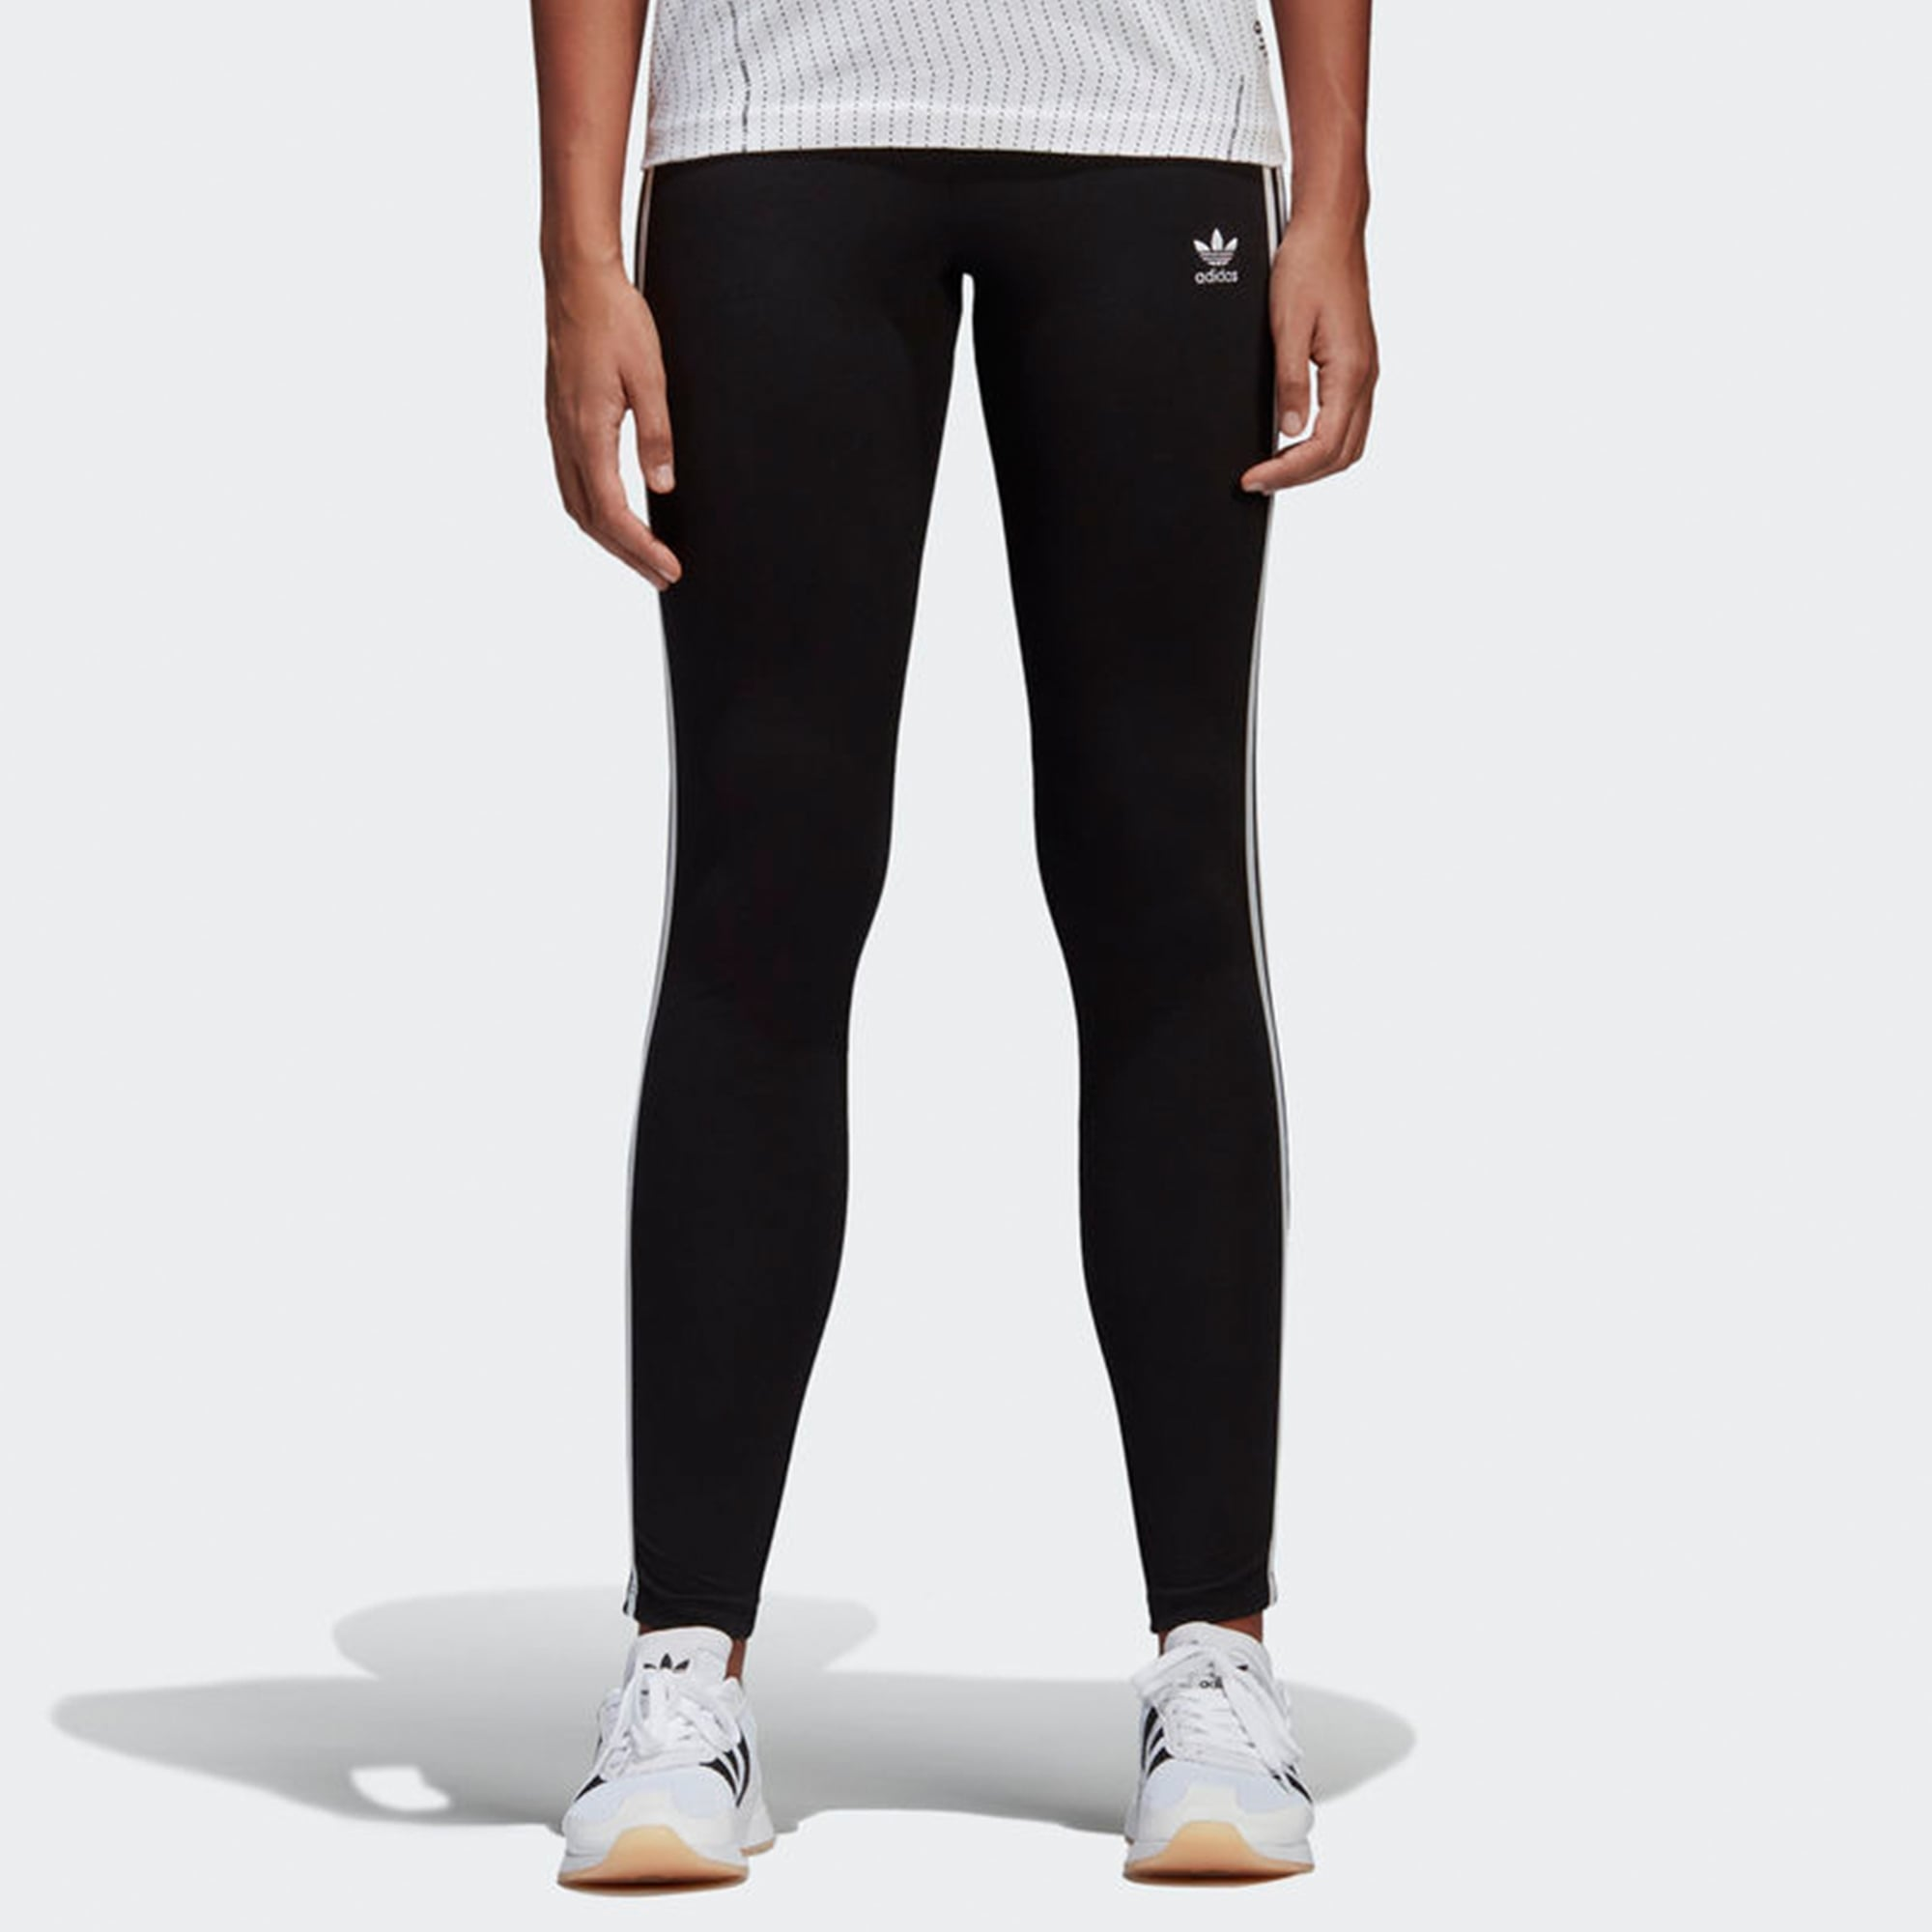 96d2272da490 Adidas Originals Womens Black 3-Stripes Leggings | CE2441